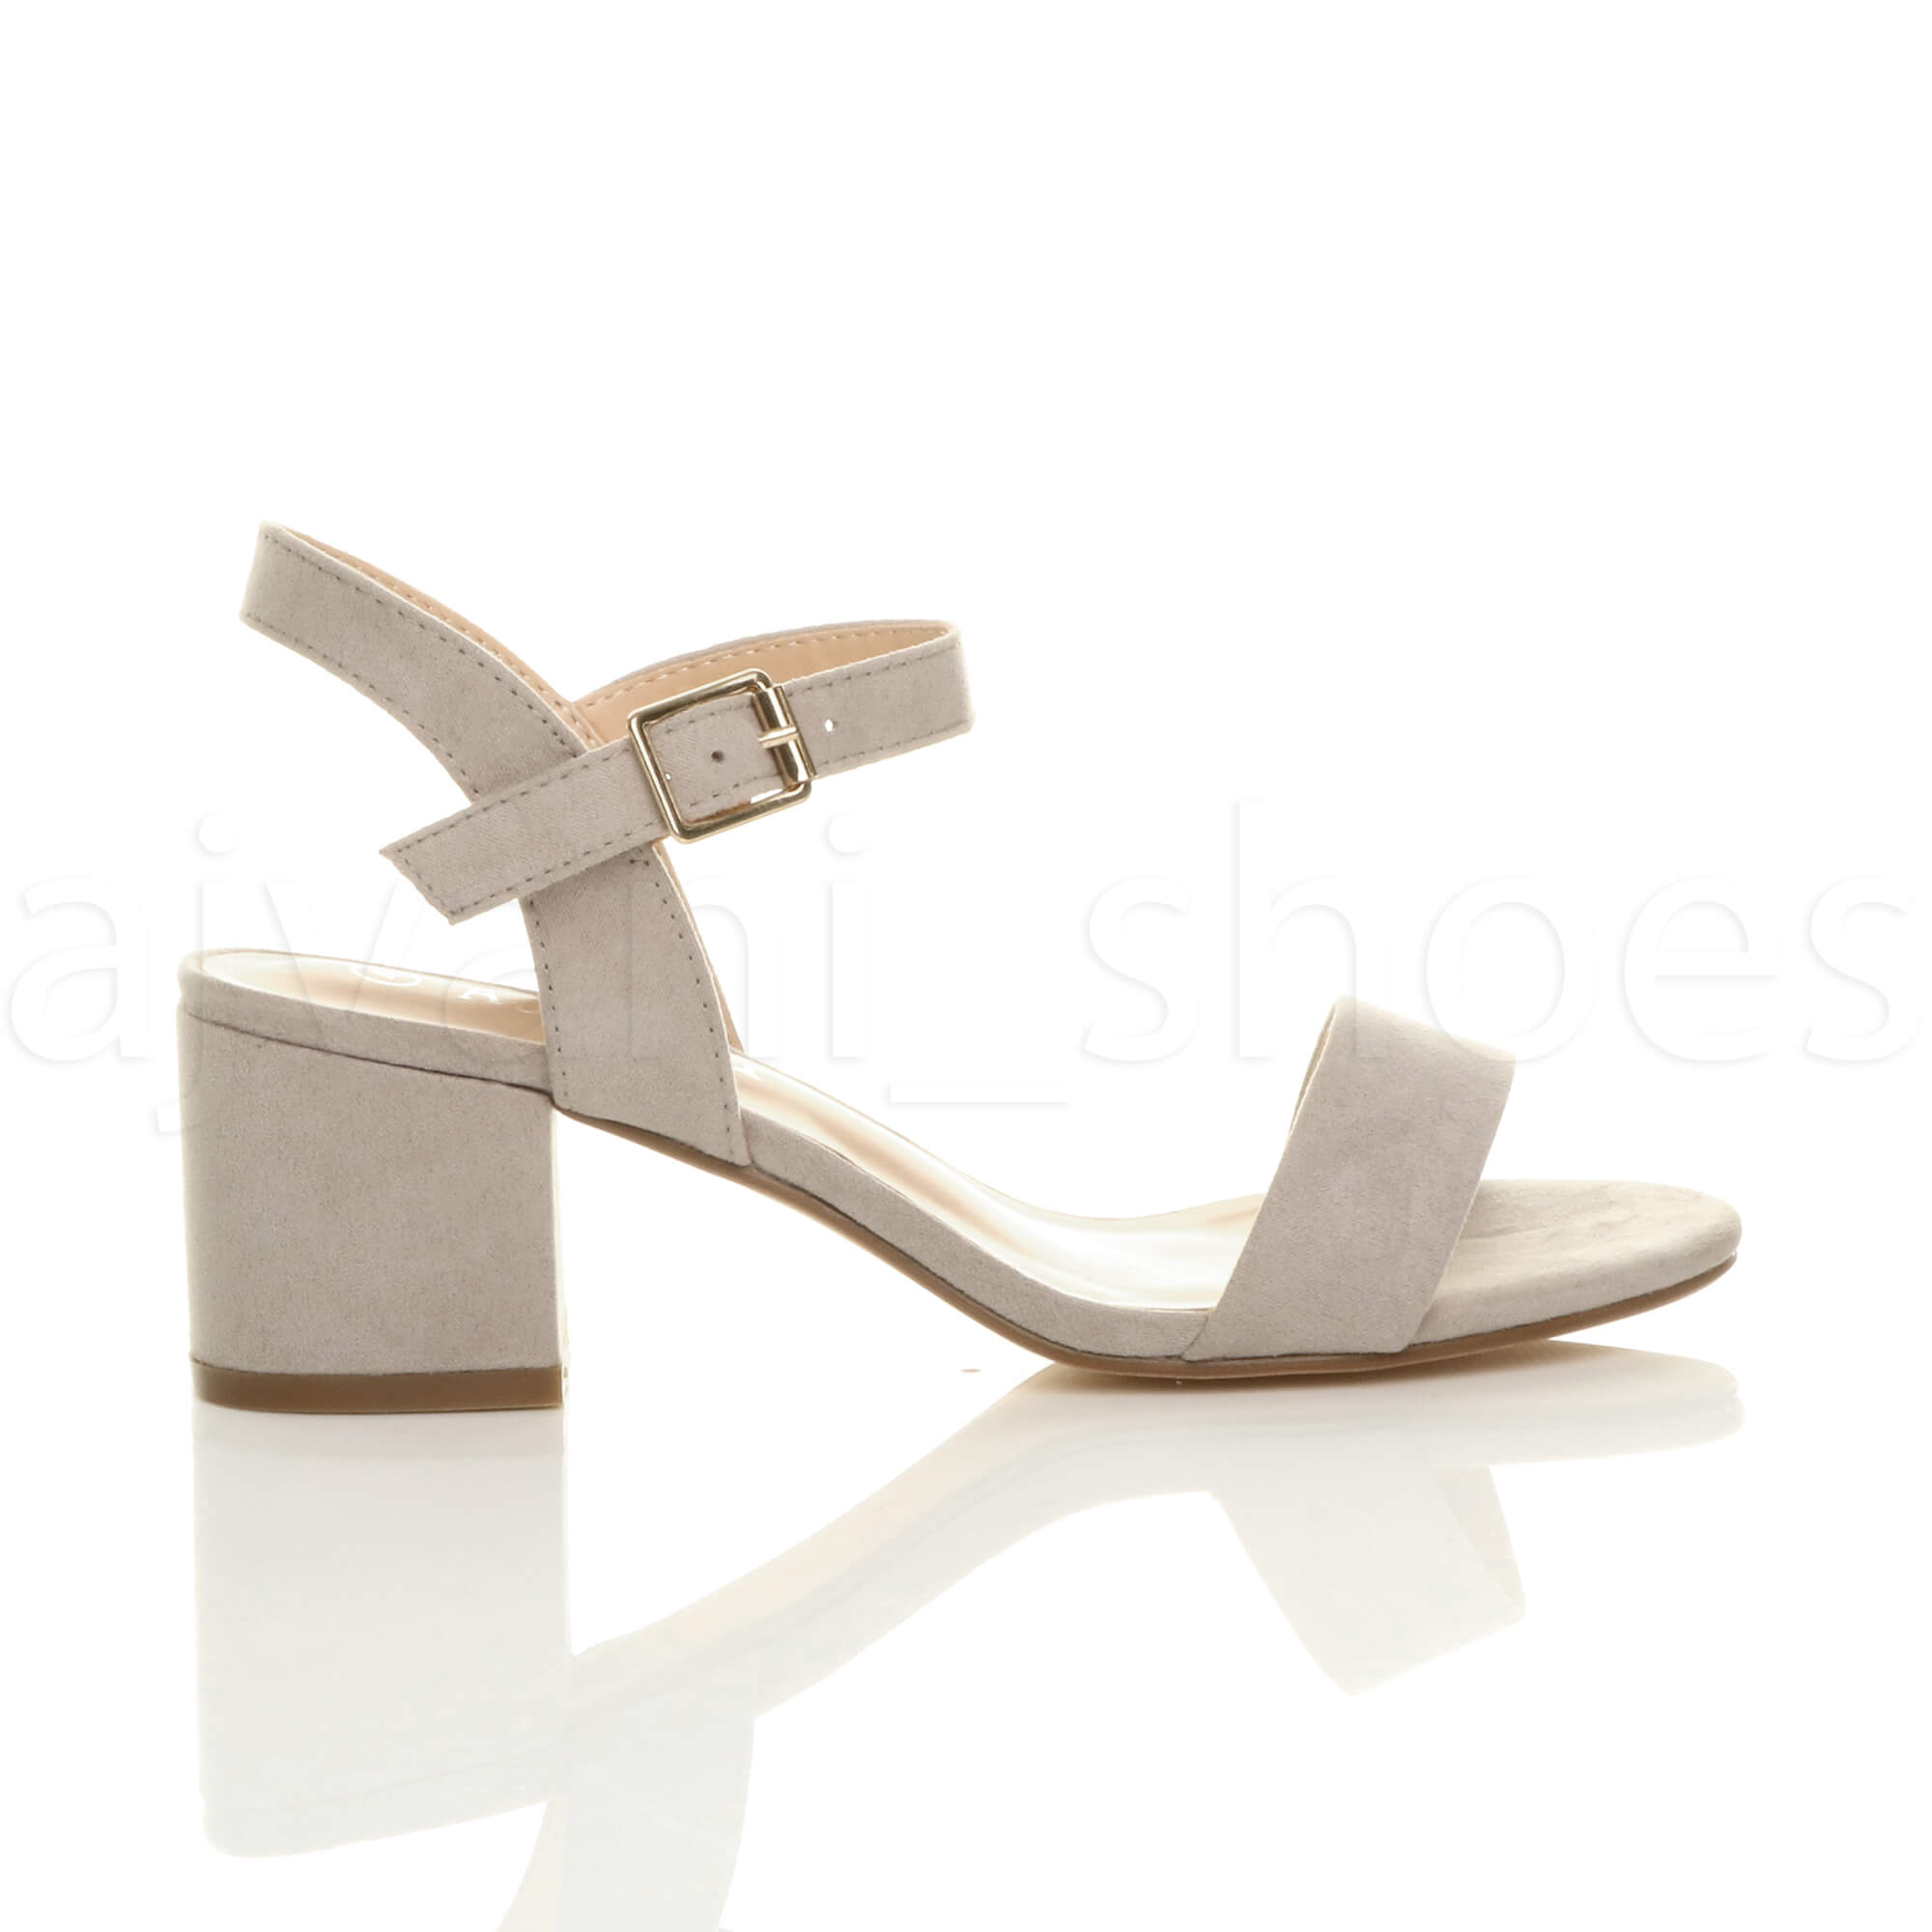 WOMENS-LADIES-MID-LOW-BLOCK-HEEL-PEEP-TOE-ANKLE-STRAP-STRAPPY-PARTY-SANDALS-SIZE thumbnail 67